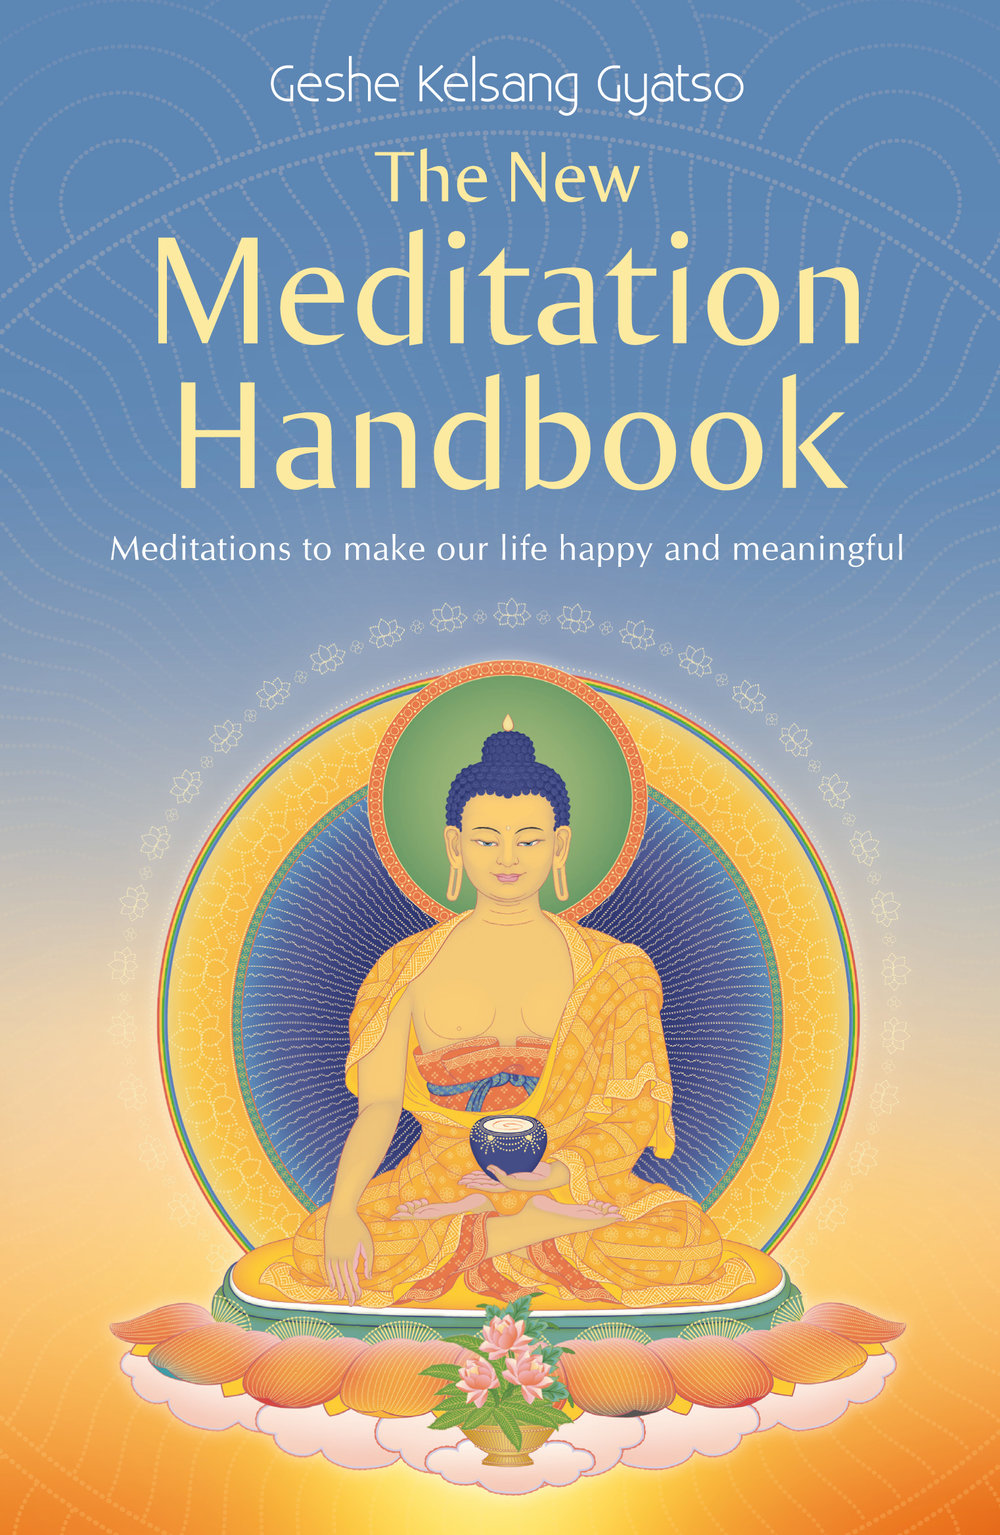 book-New-Meditation-Handbook-5-frnt.jpg